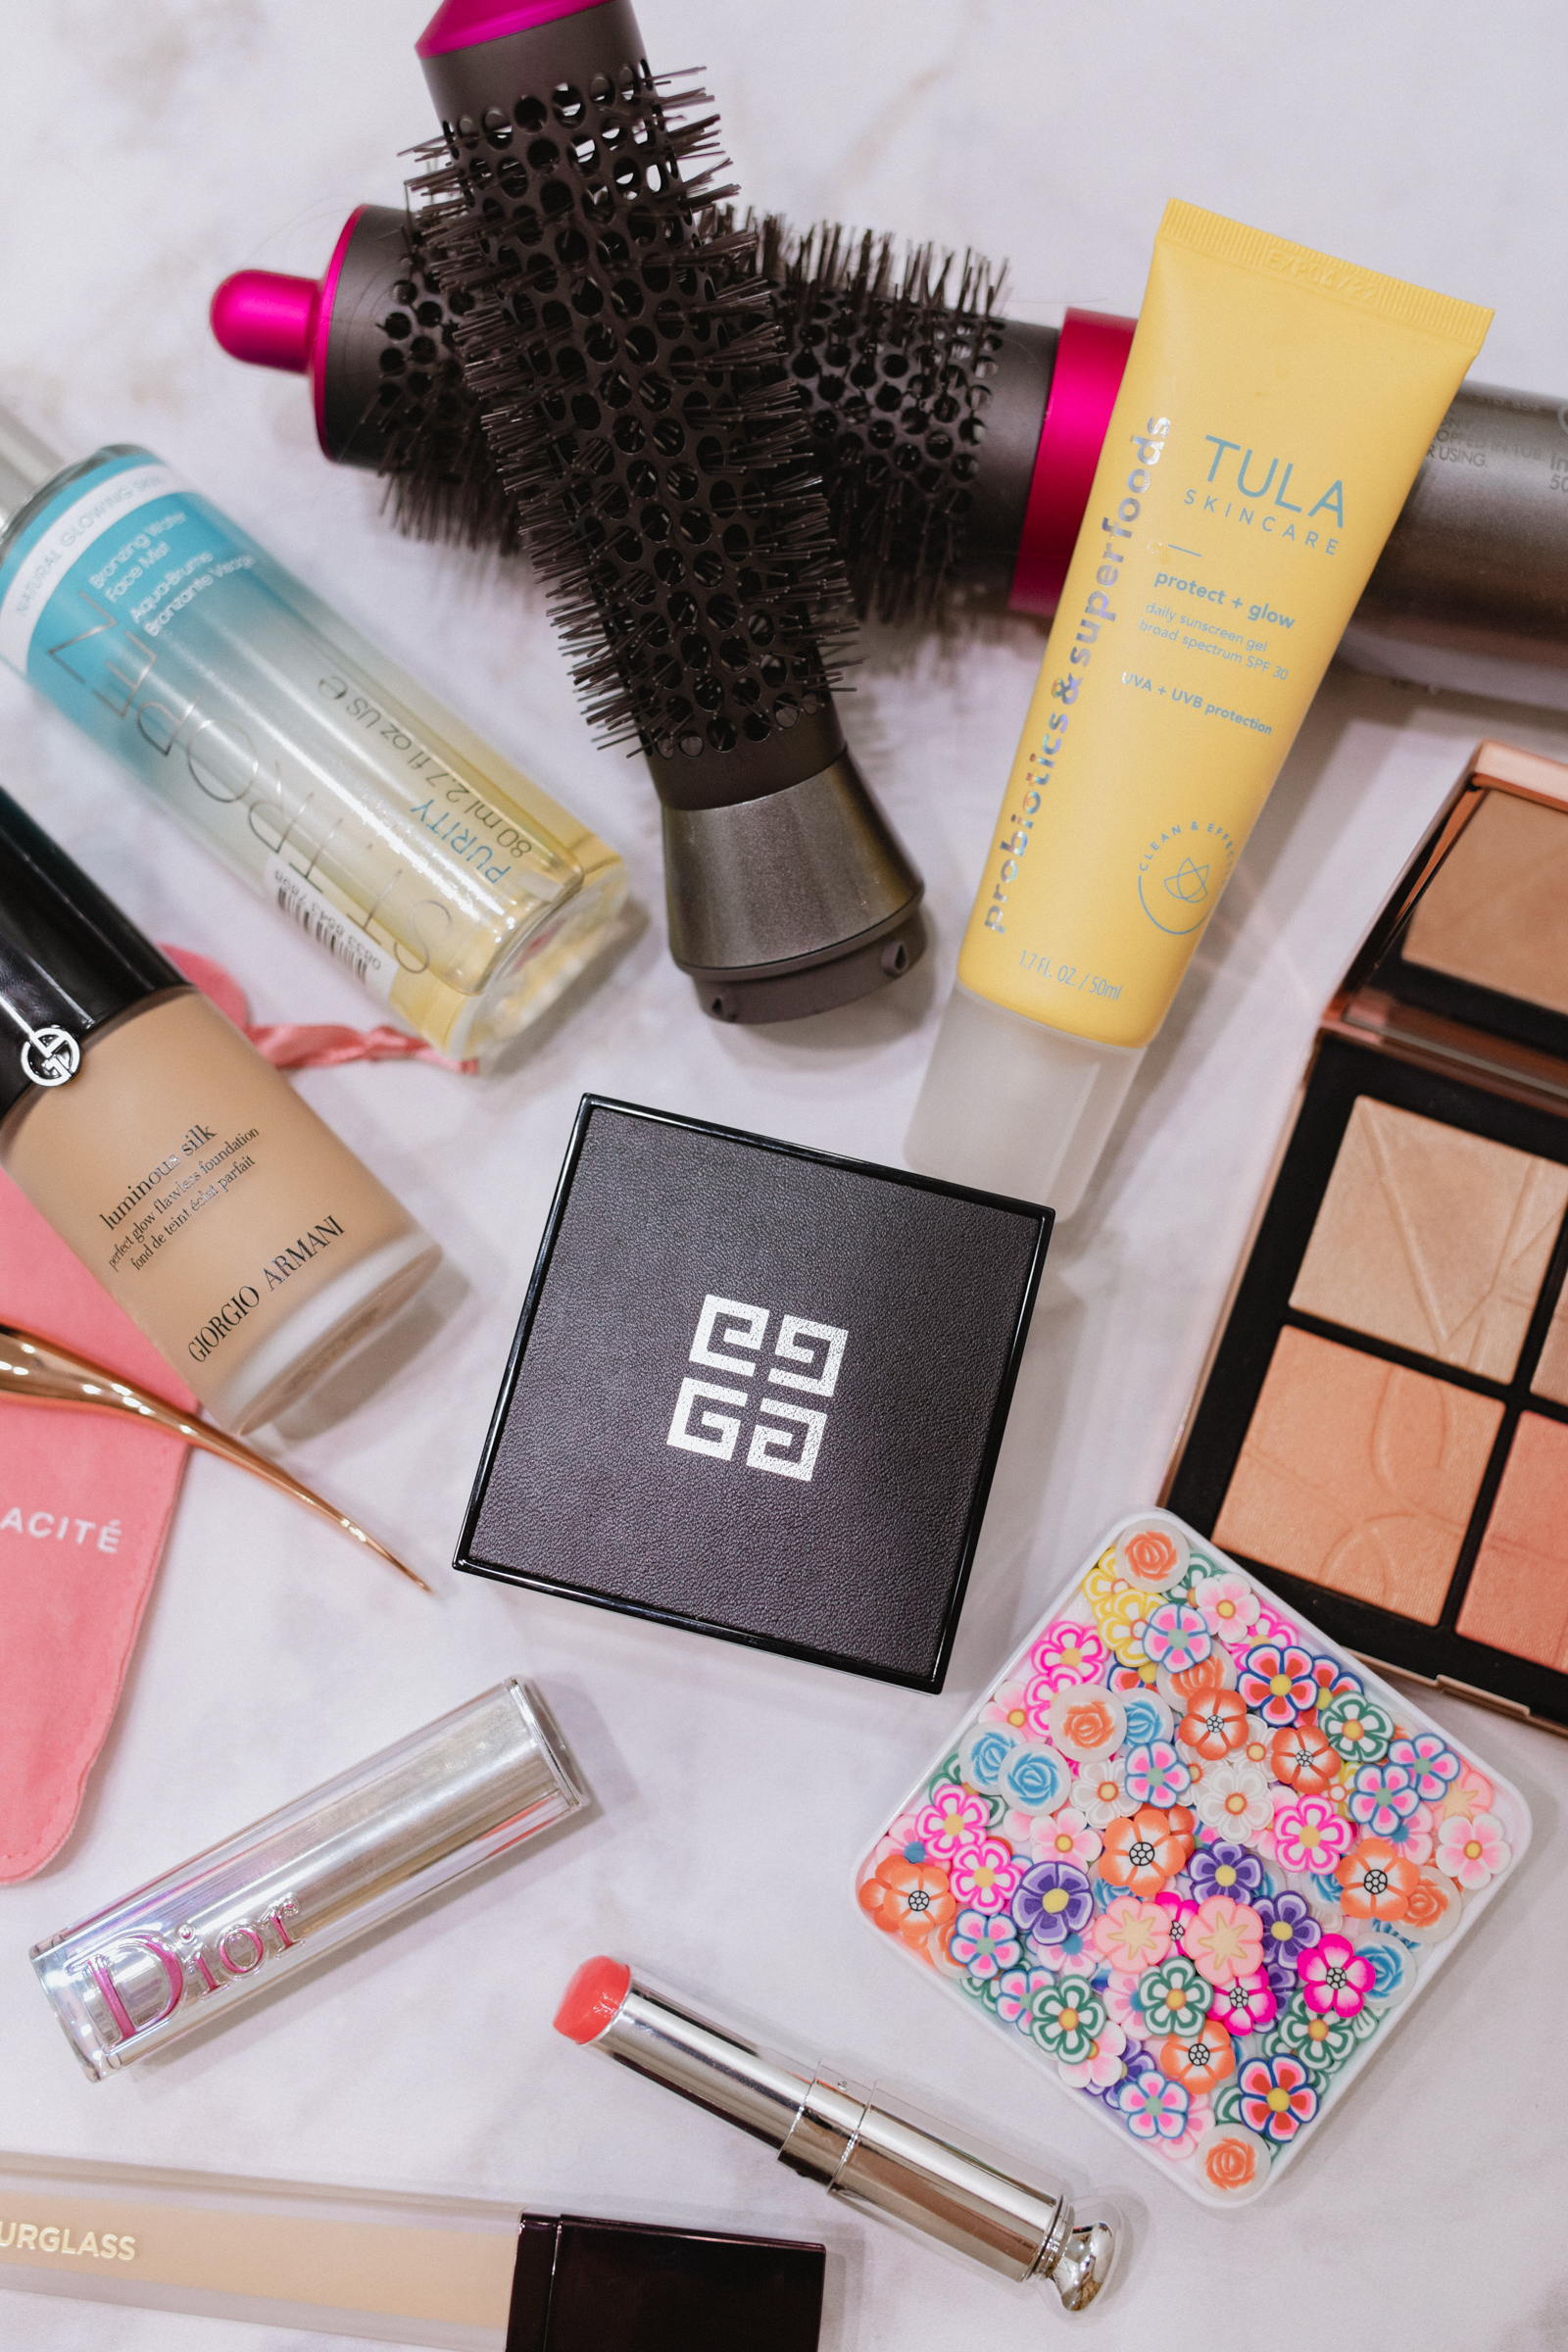 Looking for new Summer Beauty products to try and must-haves? Elly Brown shares her Summer Beauty Favorites all from Nordstrom!